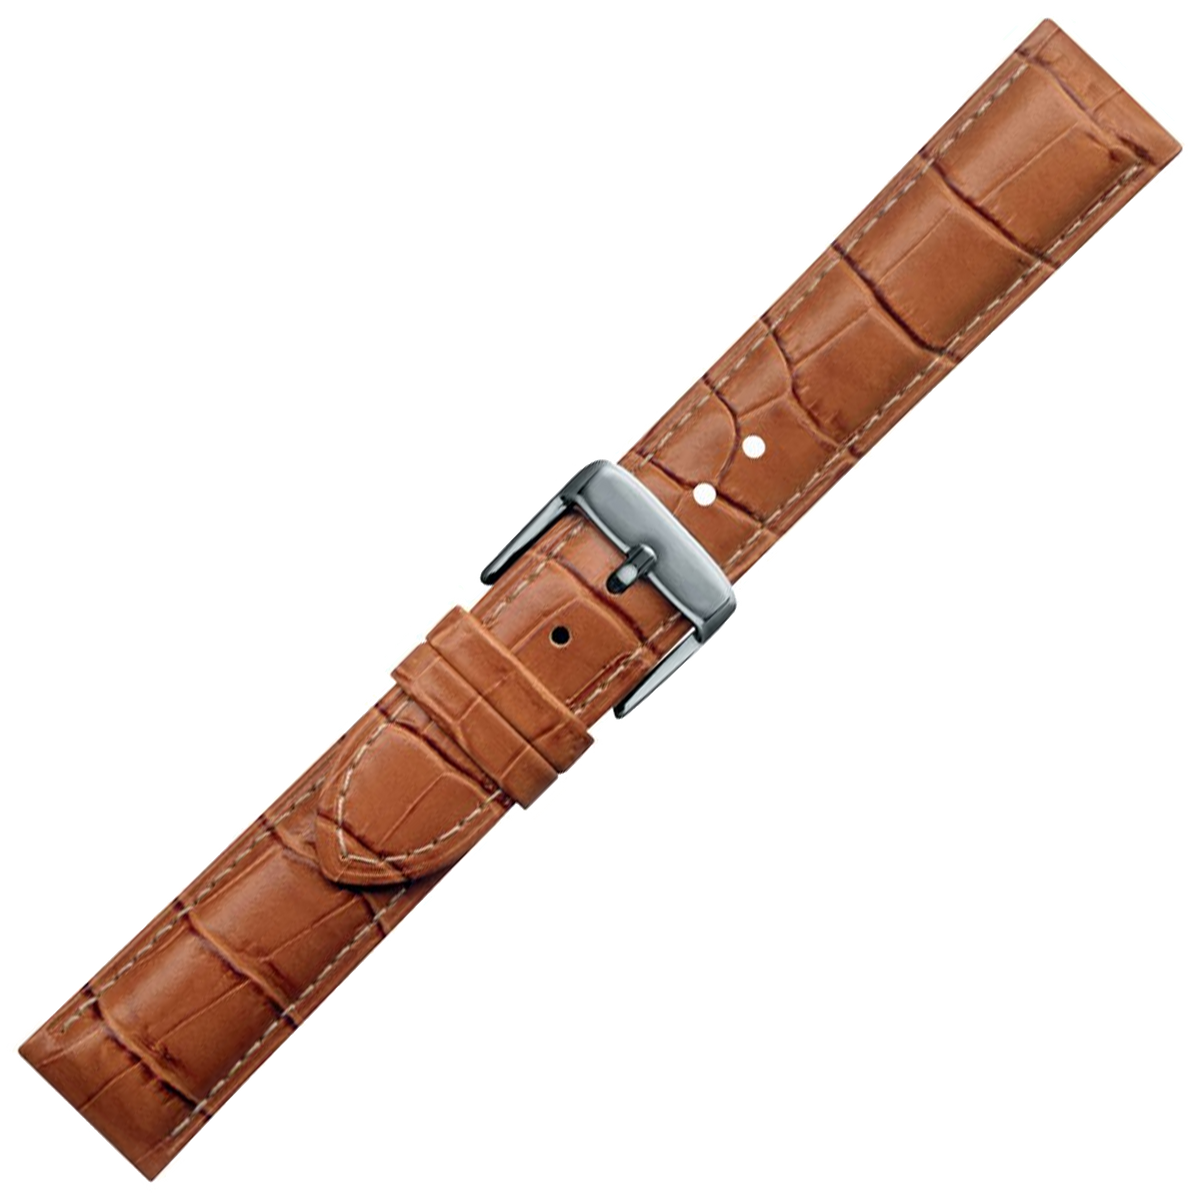 Condor Watchstrap - Crocodile Print Embossed Leather